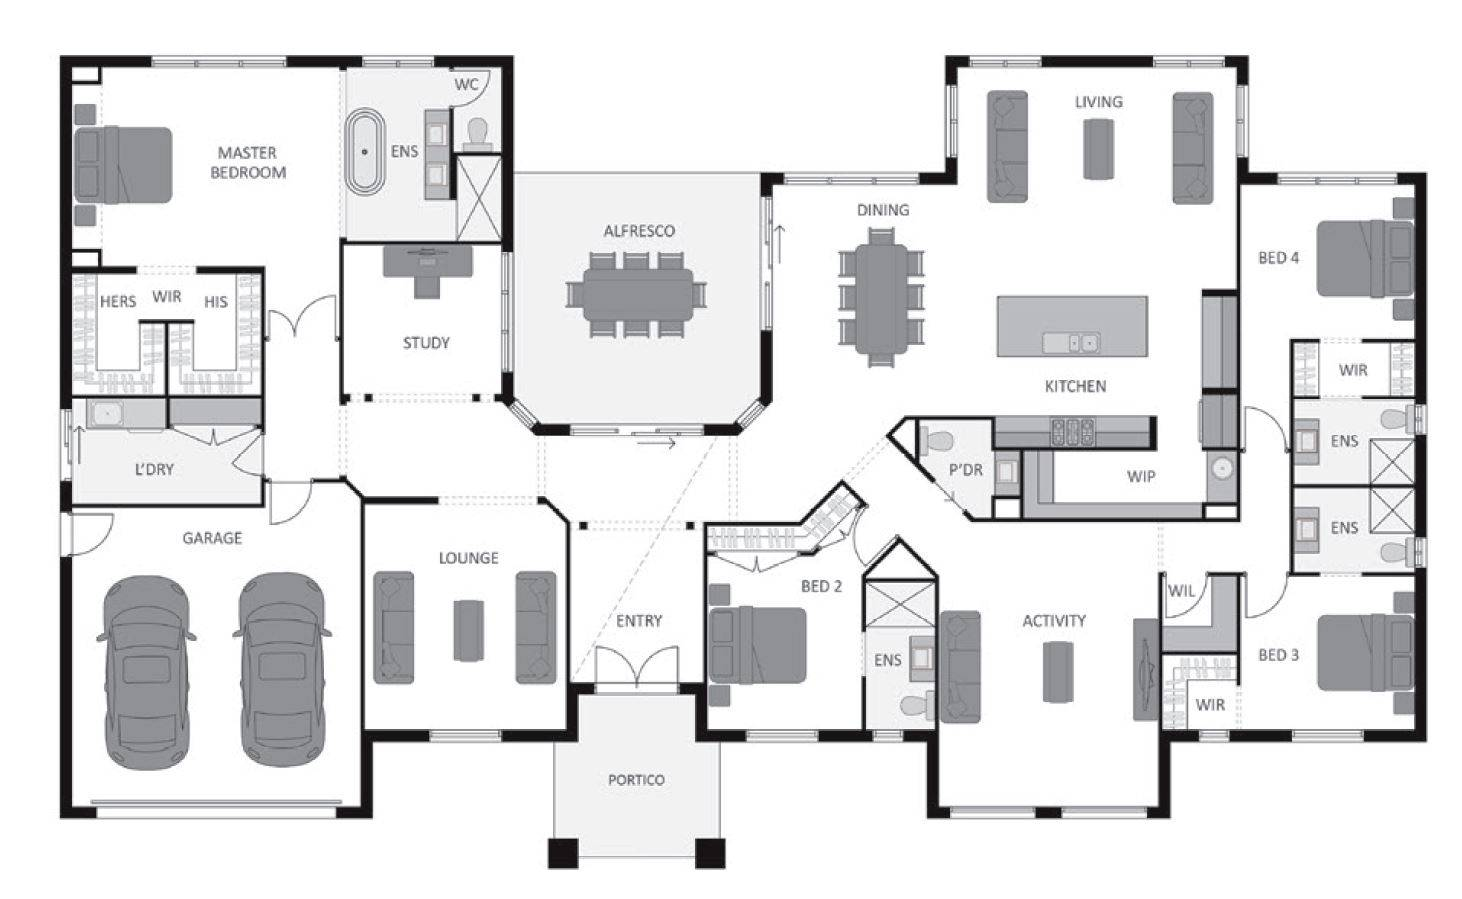 Multi Family Compound Floor Plans Family Free Download